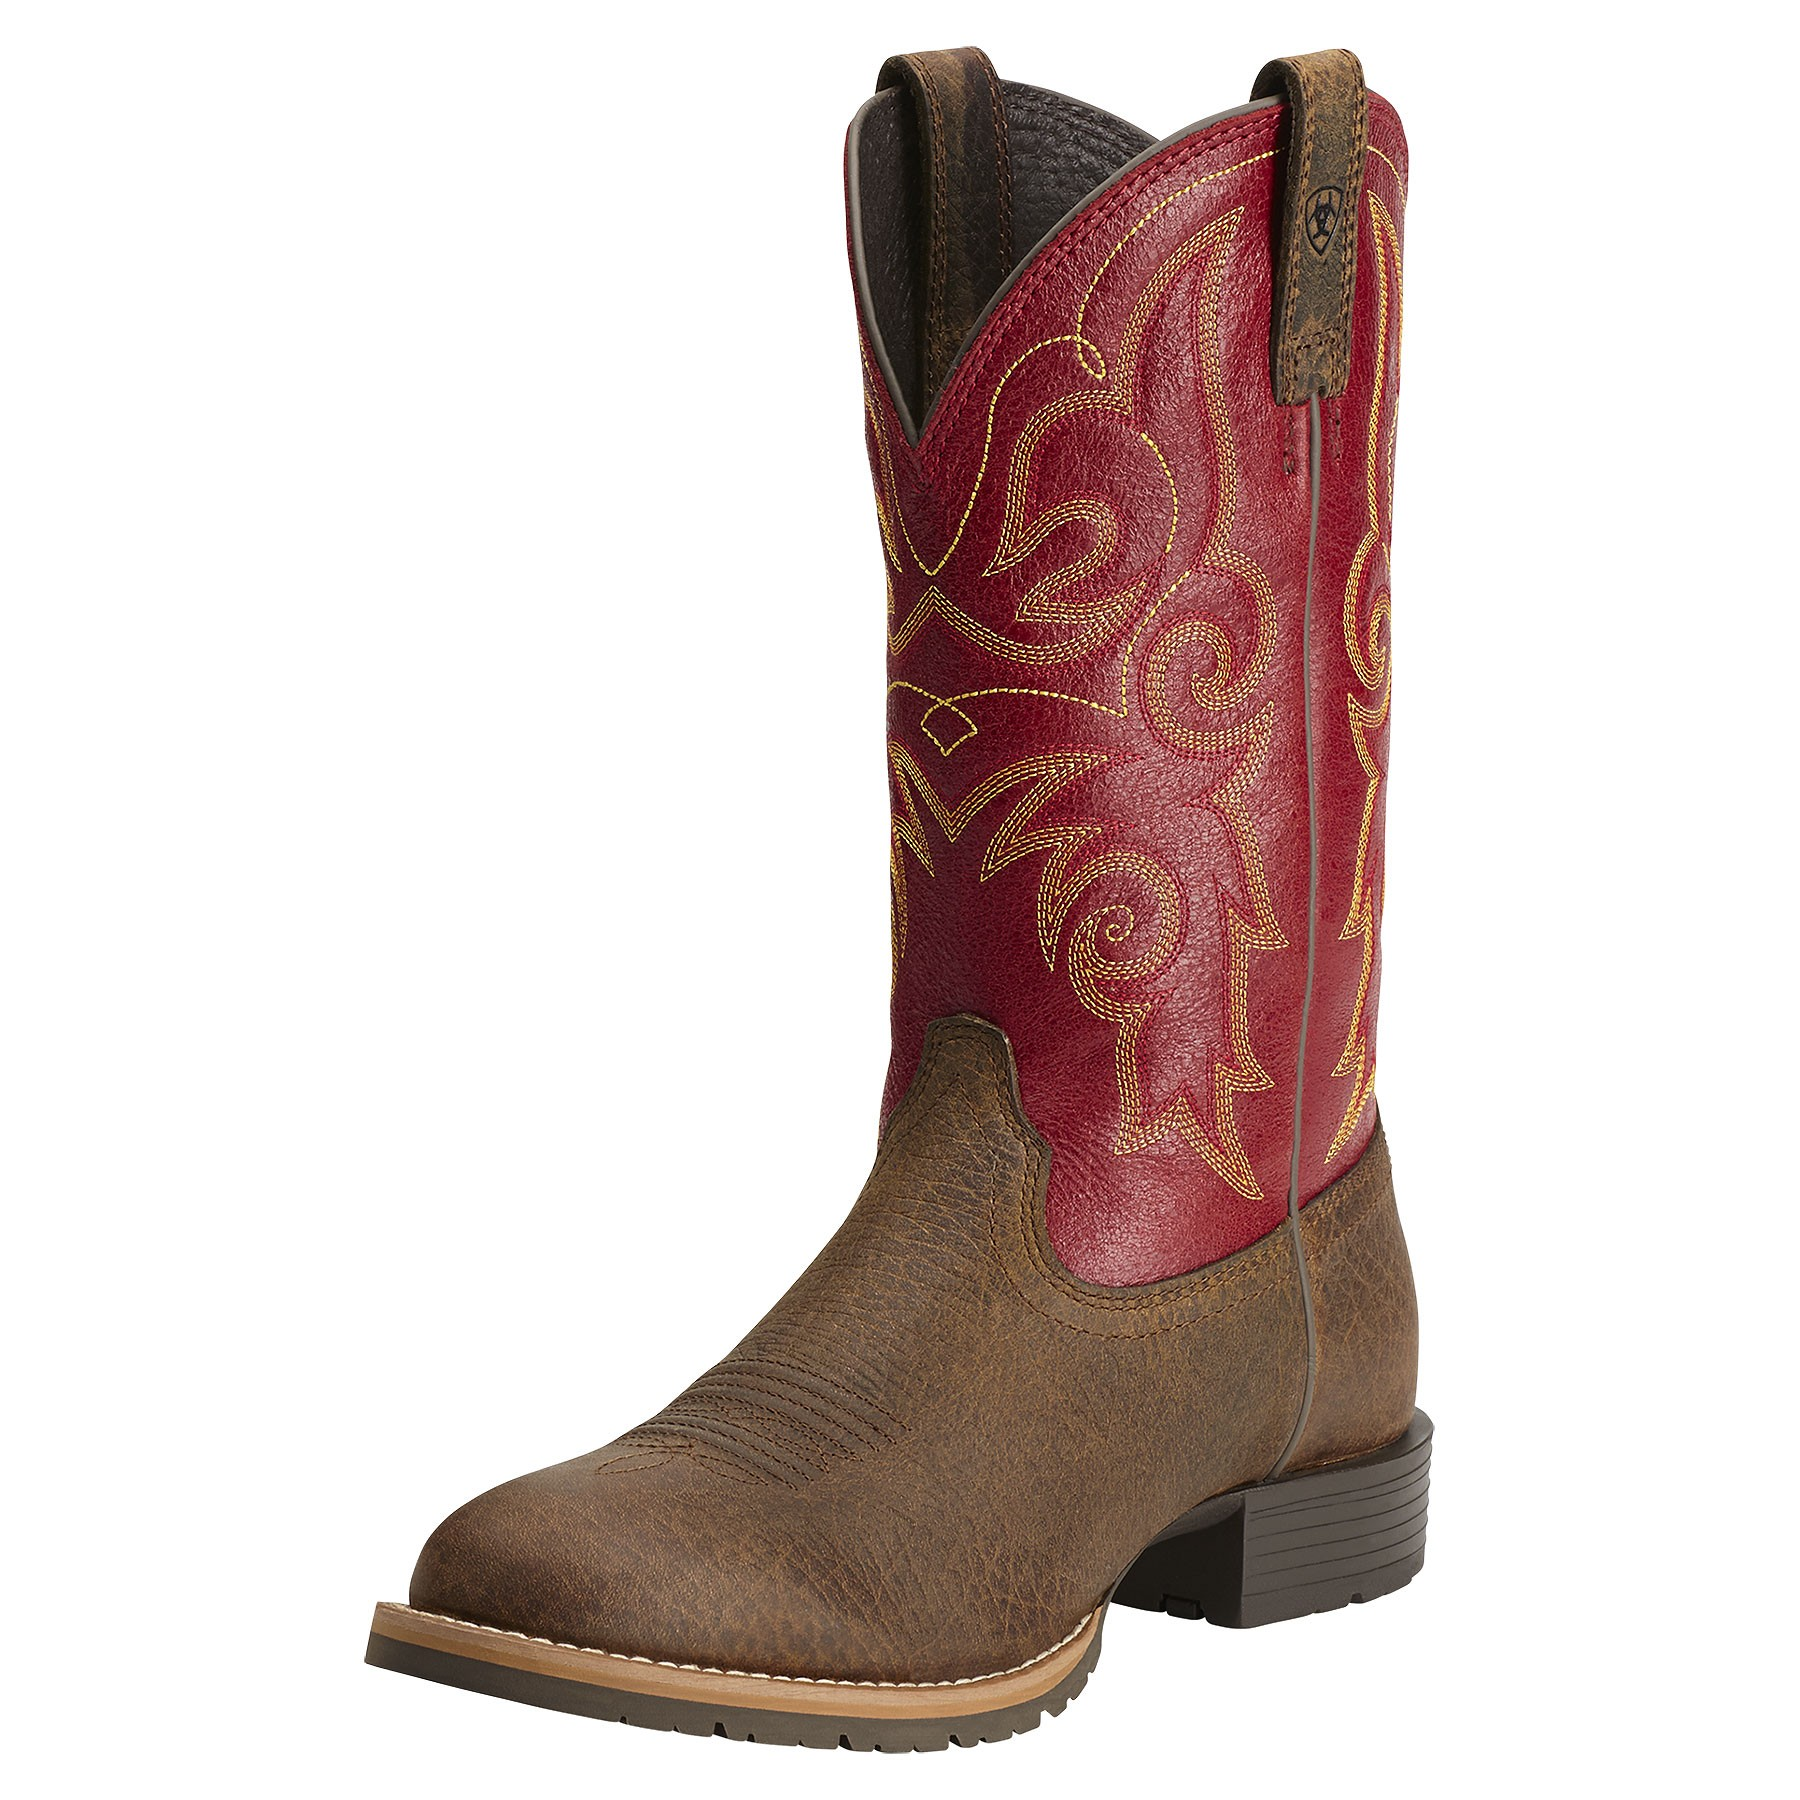 Sale on Ariat Boots - 2 Days Only! | Boots, Cowgirl boots